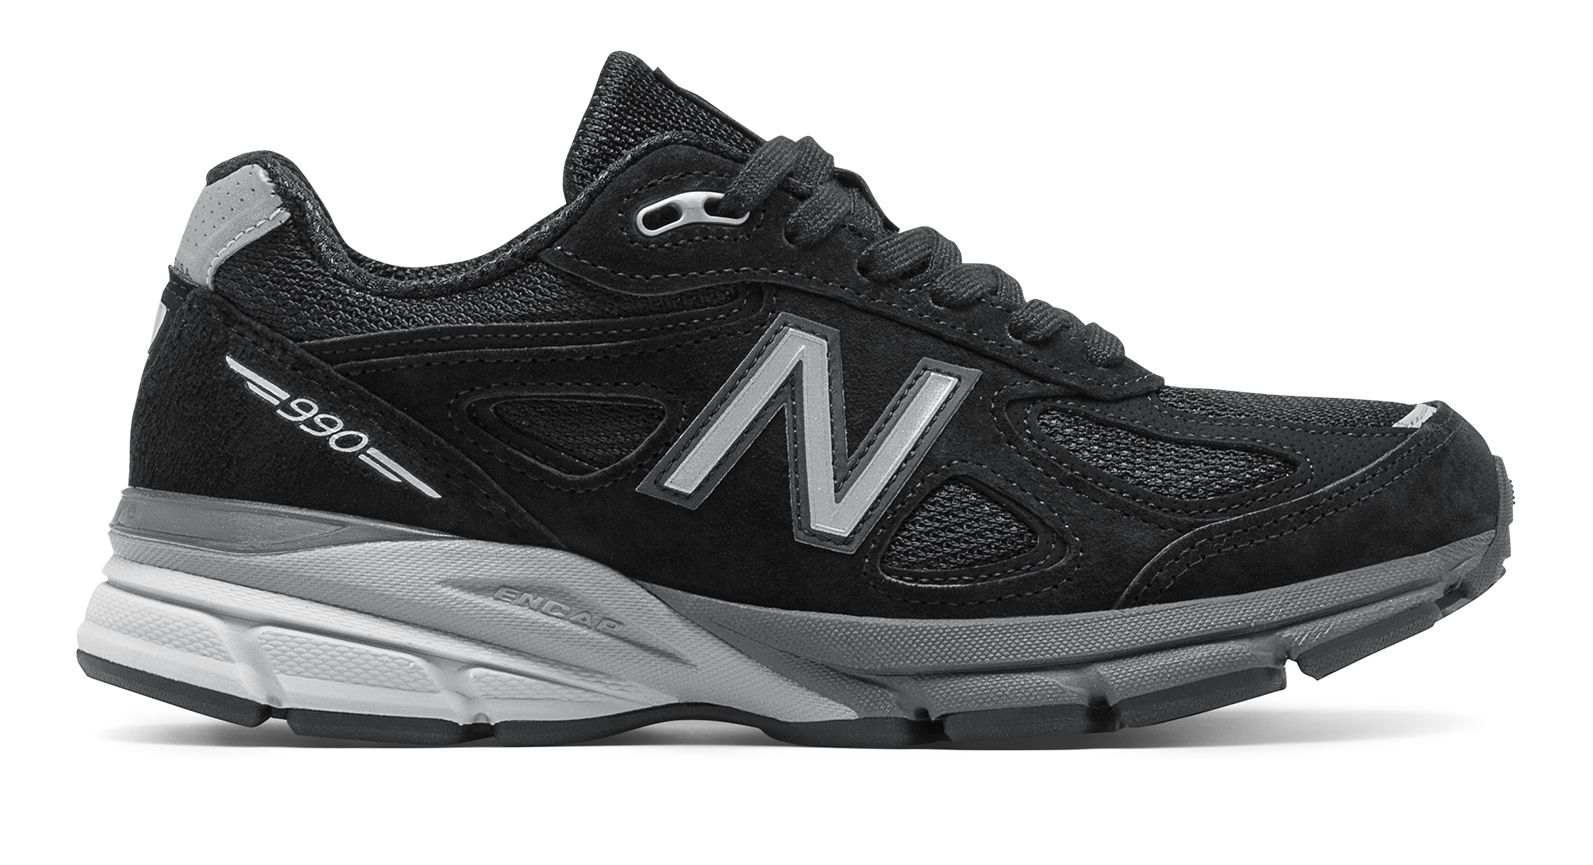 NB New Balance 990v4, Black with Silver